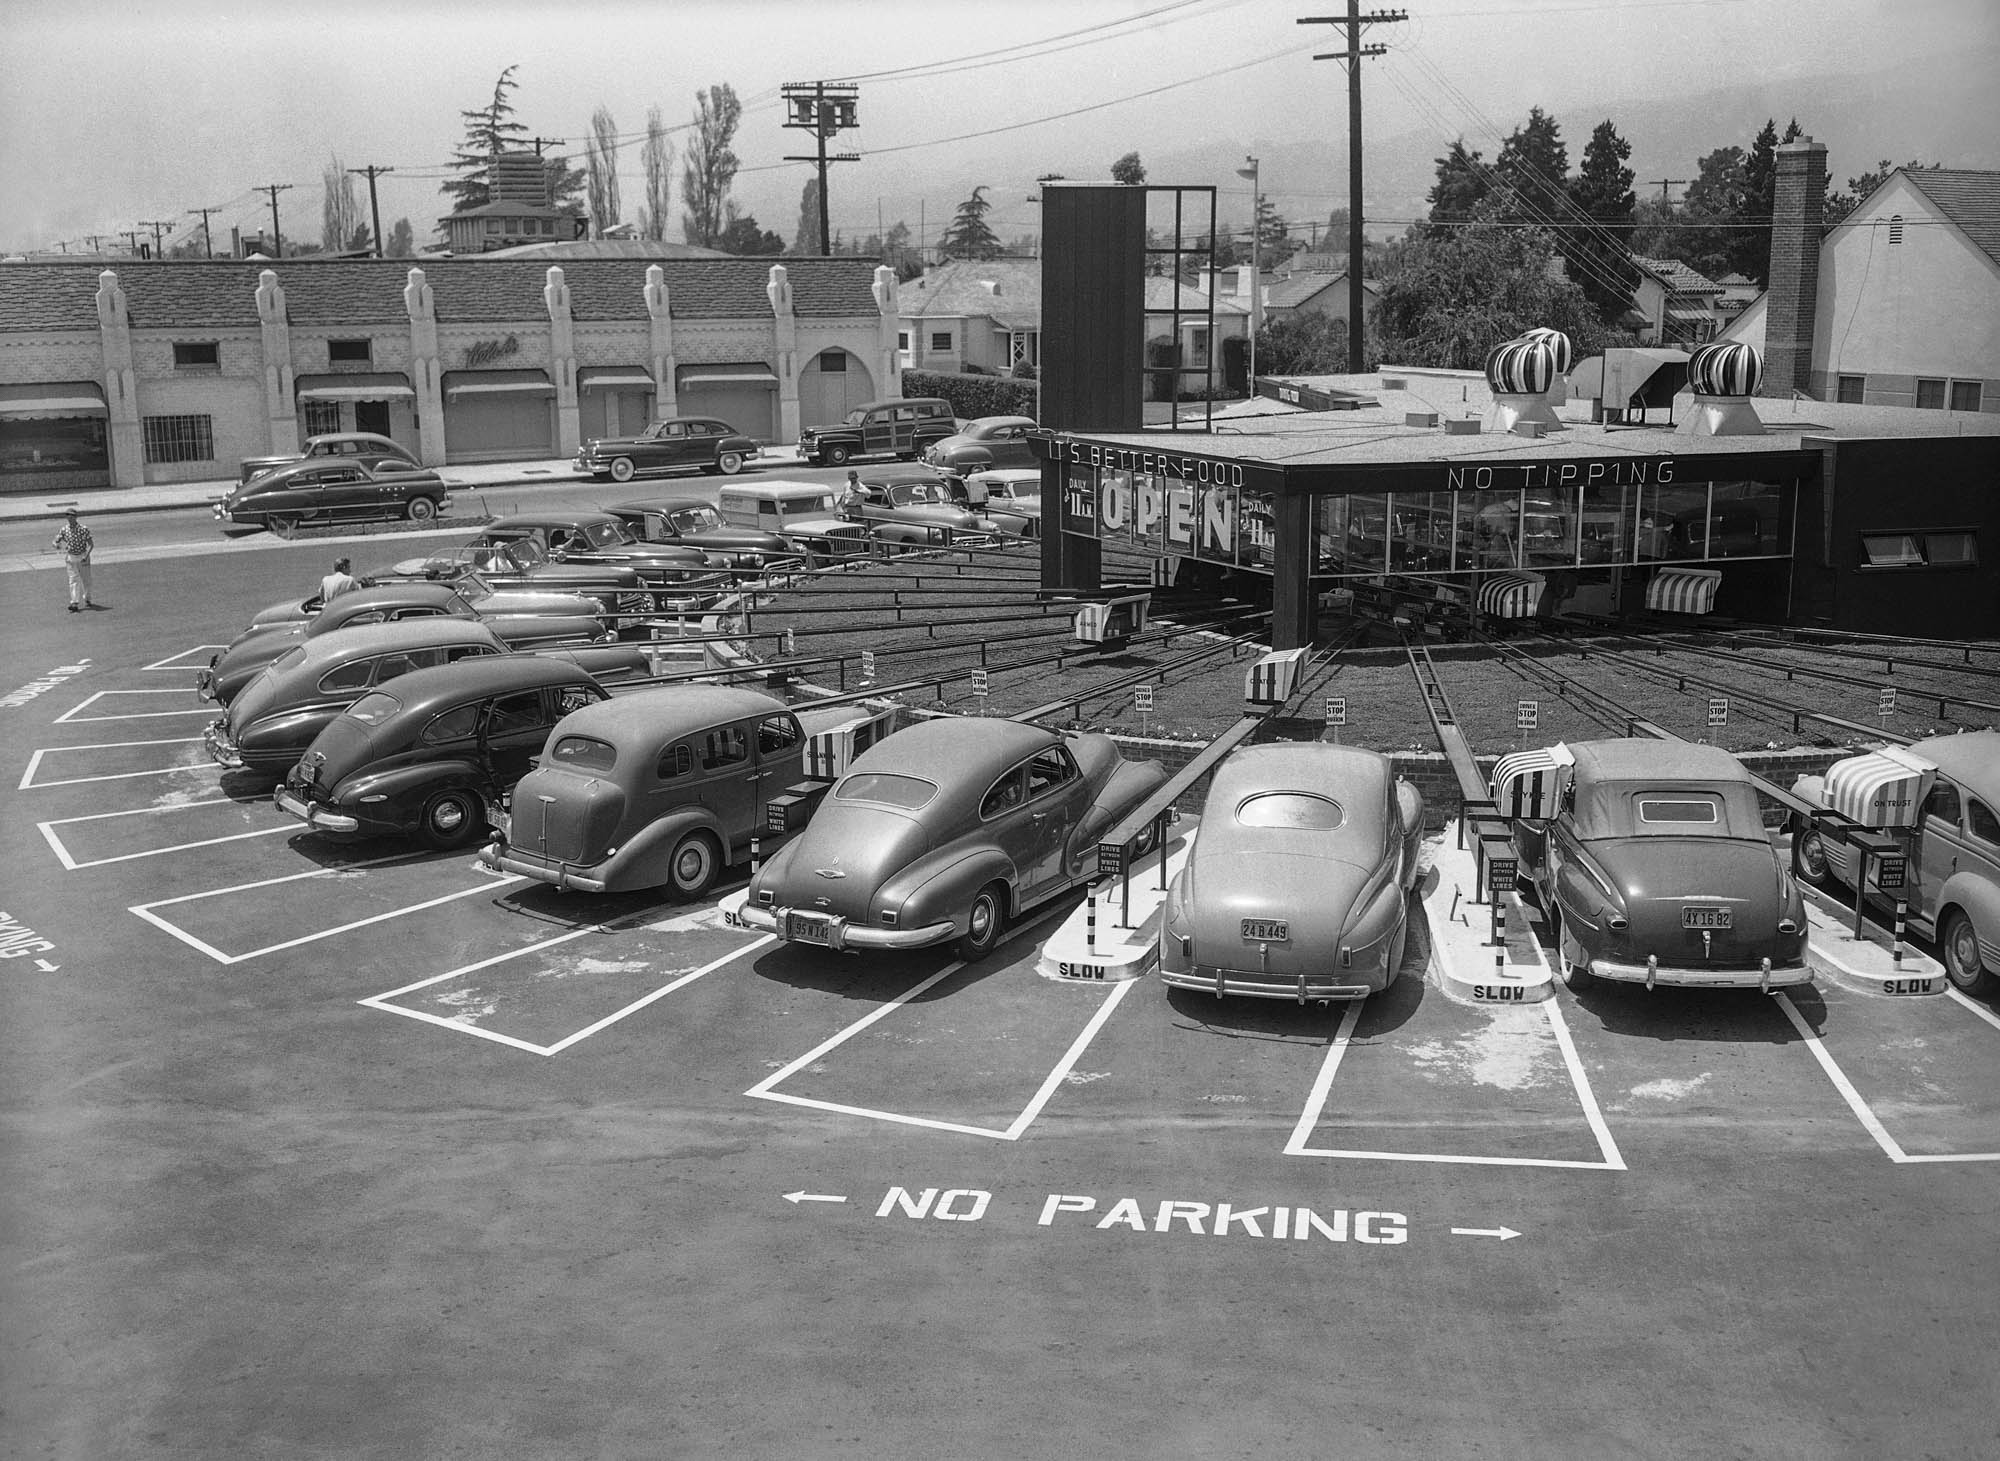 Cars parked in circle at drive-in restaurant in 1949 (© AP Images)